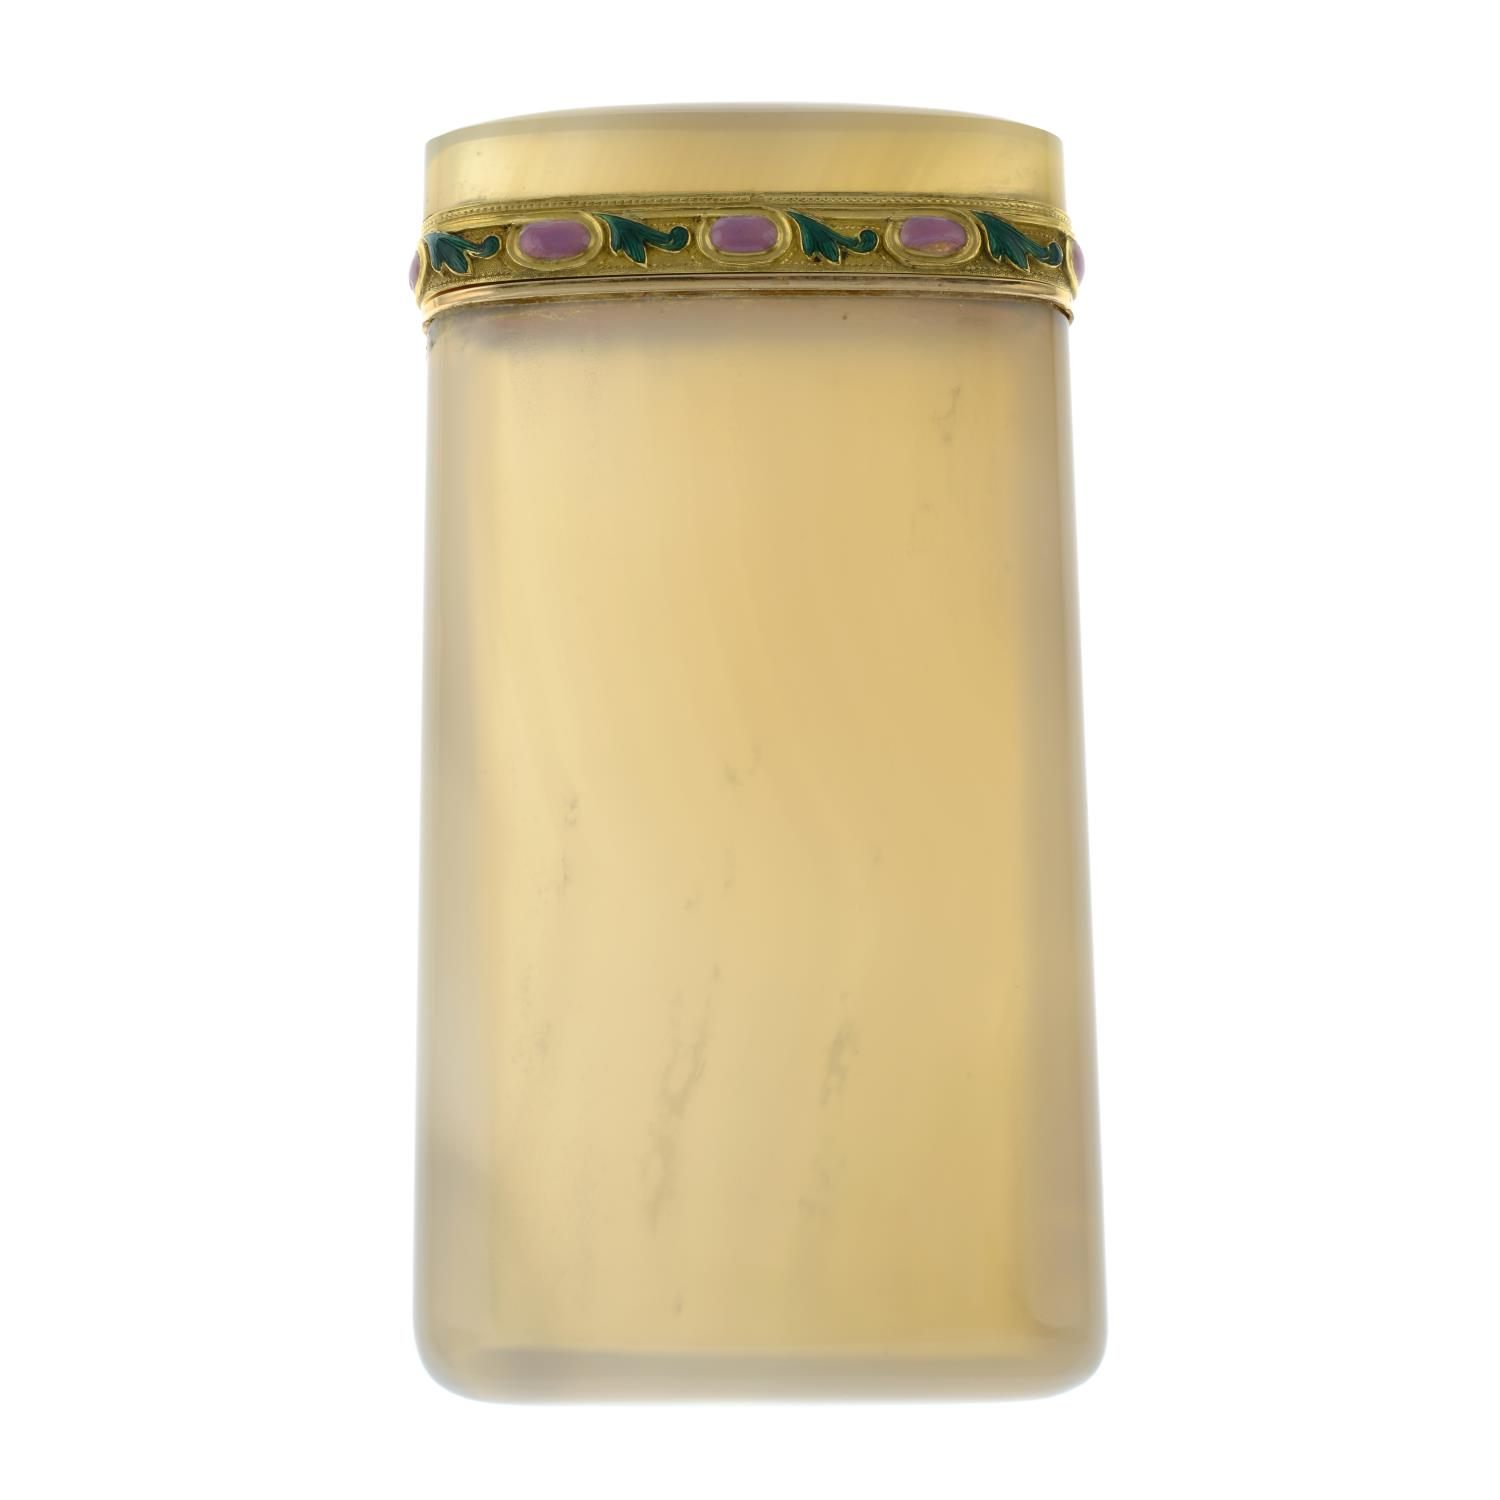 An early 20th century agate cigarette case, - Image 2 of 4